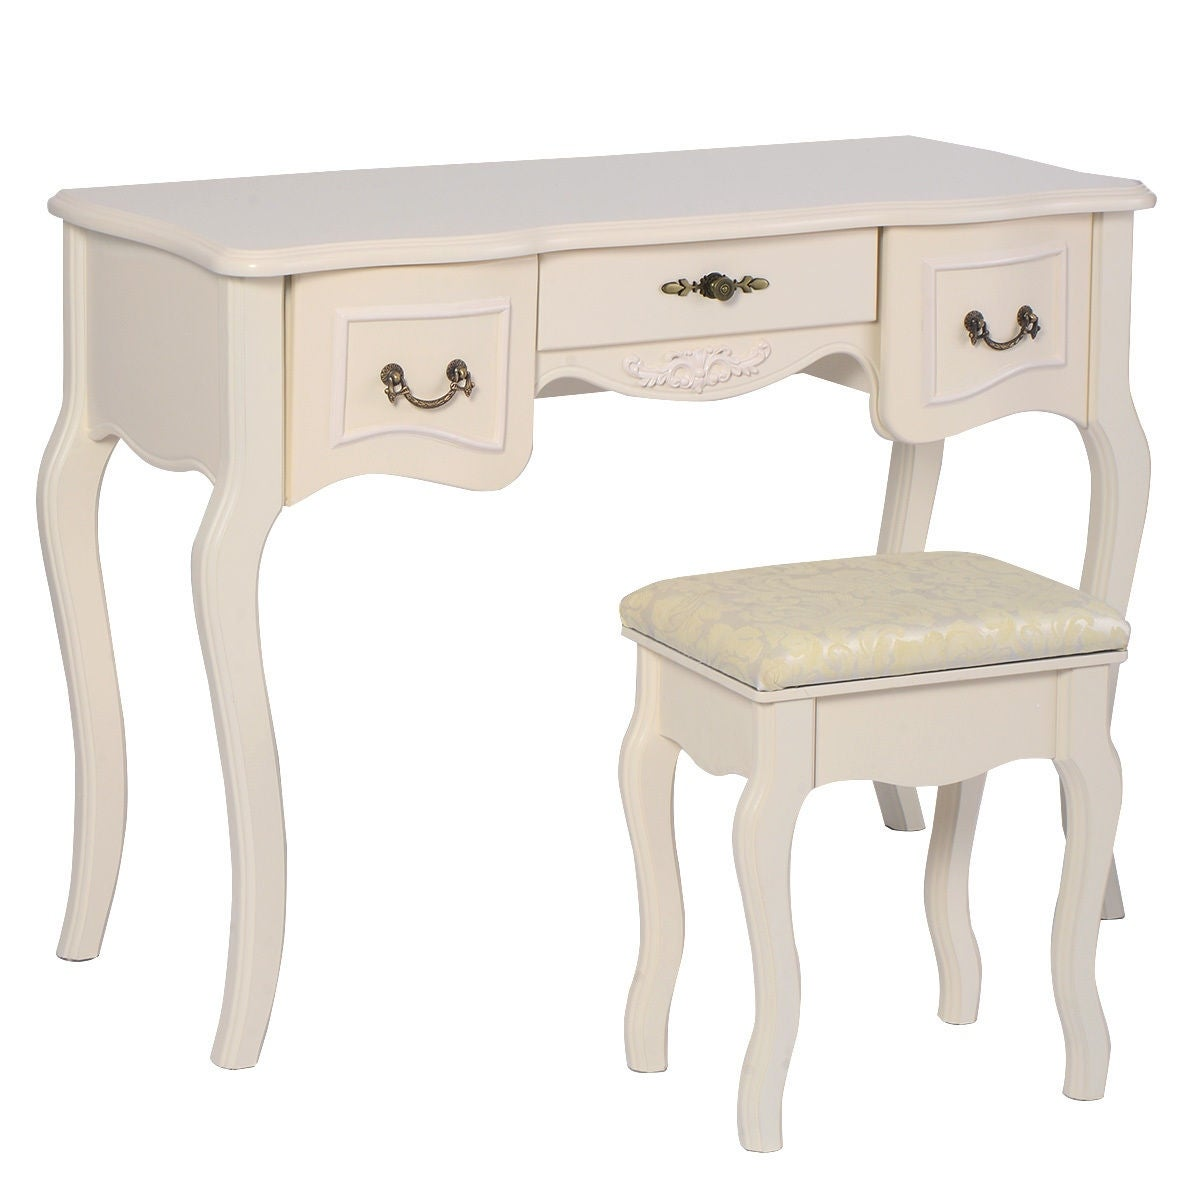 or with drawer drawers there product by outthereinteriors interiors five original console out dressing classic table